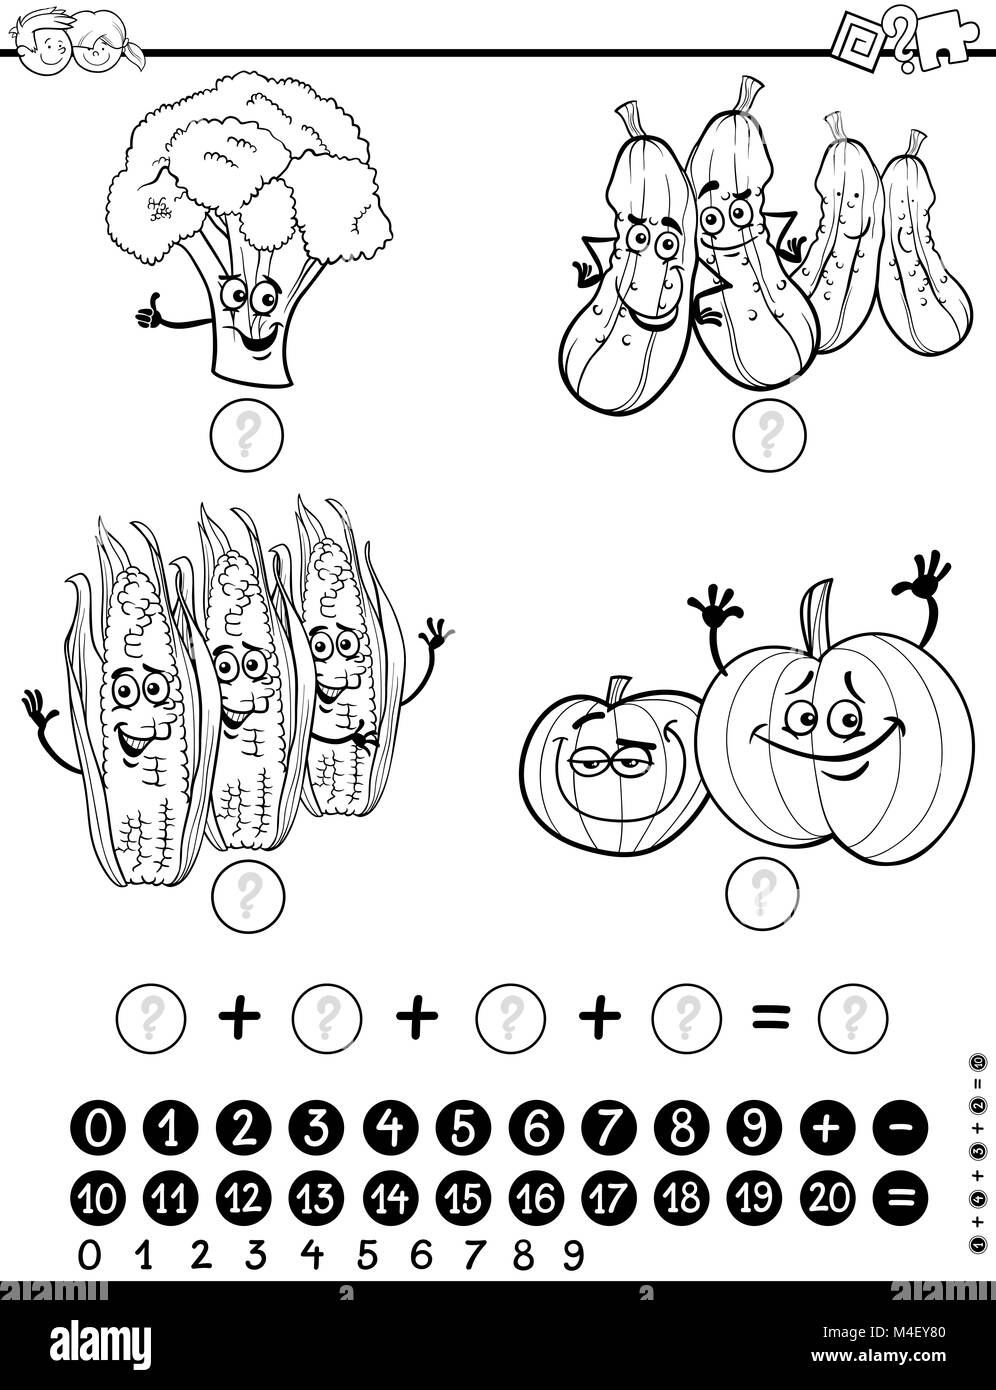 Maths Activity Worksheet For Coloring